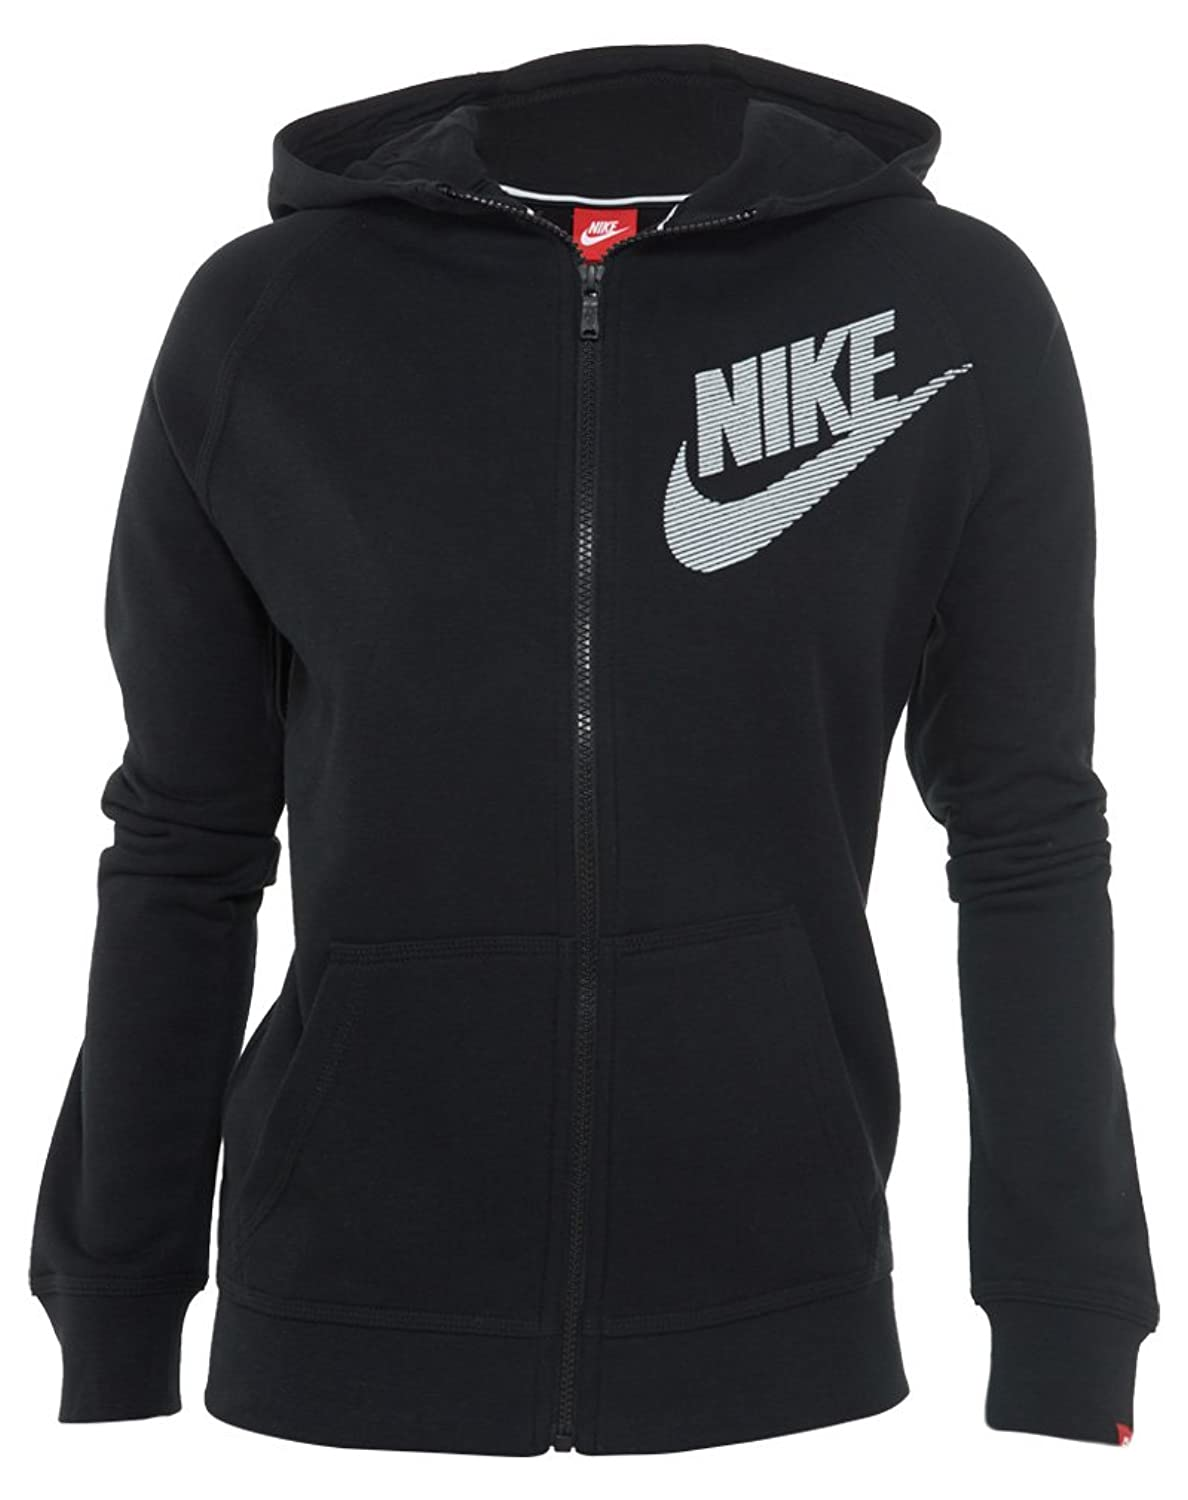 NIKE Jungen Sweatjacke Young Athlete 76 High Brand SB Full Zip